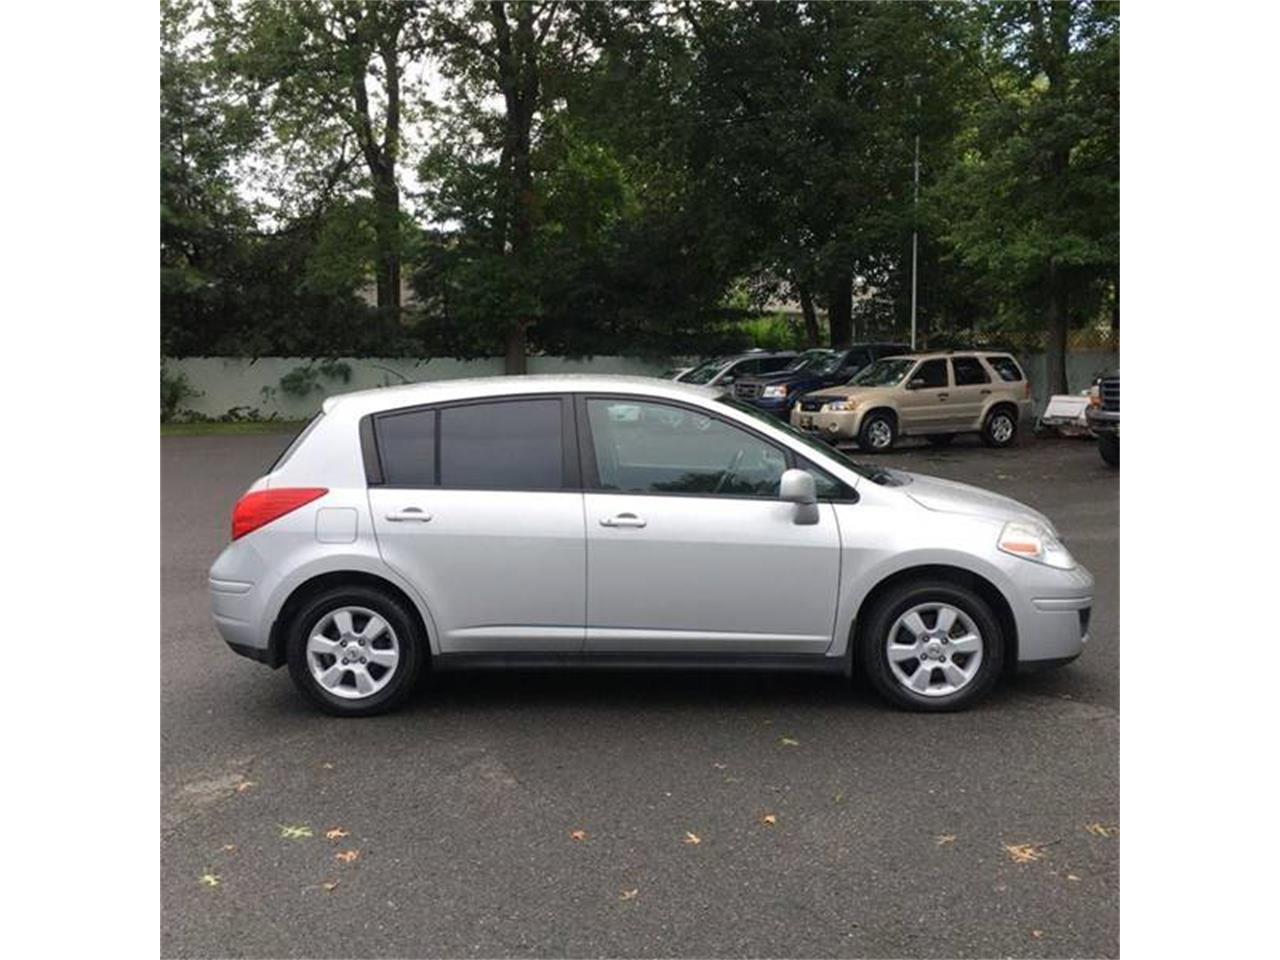 2007 Nissan Versa for sale in Hilton, NY – photo 4